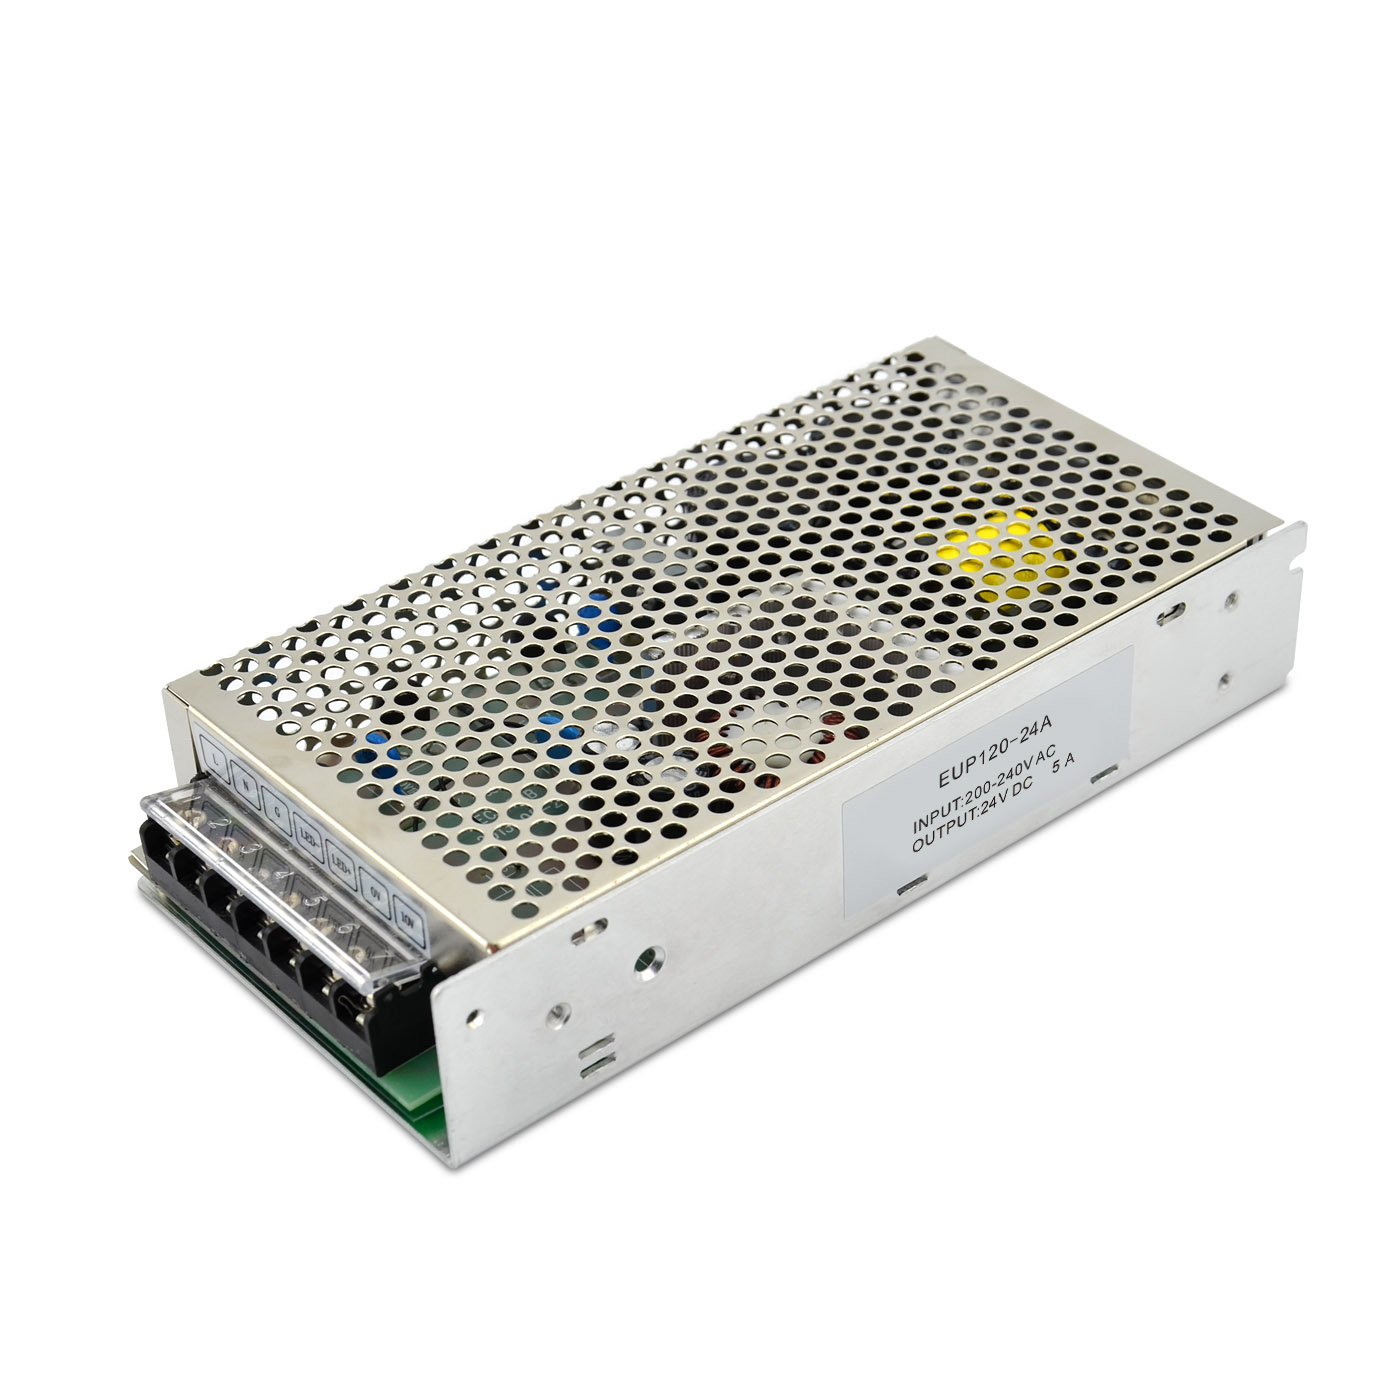 Rapid Delivery for Led Converter For Led - 120W 24VDC 1-10v Dimming LED Driver EUP120-24A – Euchips